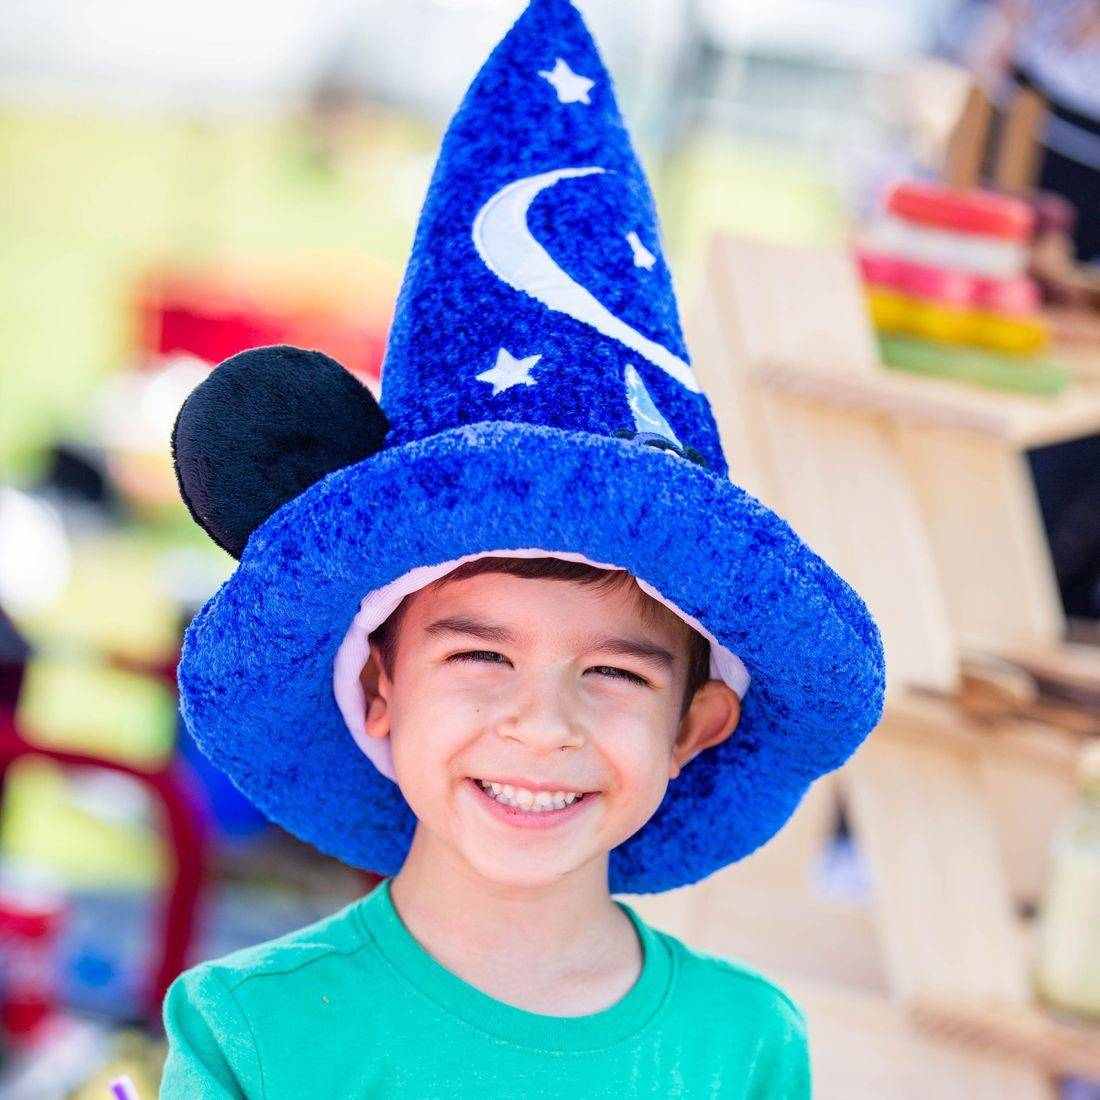 Mickey Mouse hat, Mickey Costume, Wizard hat, Boy costumes